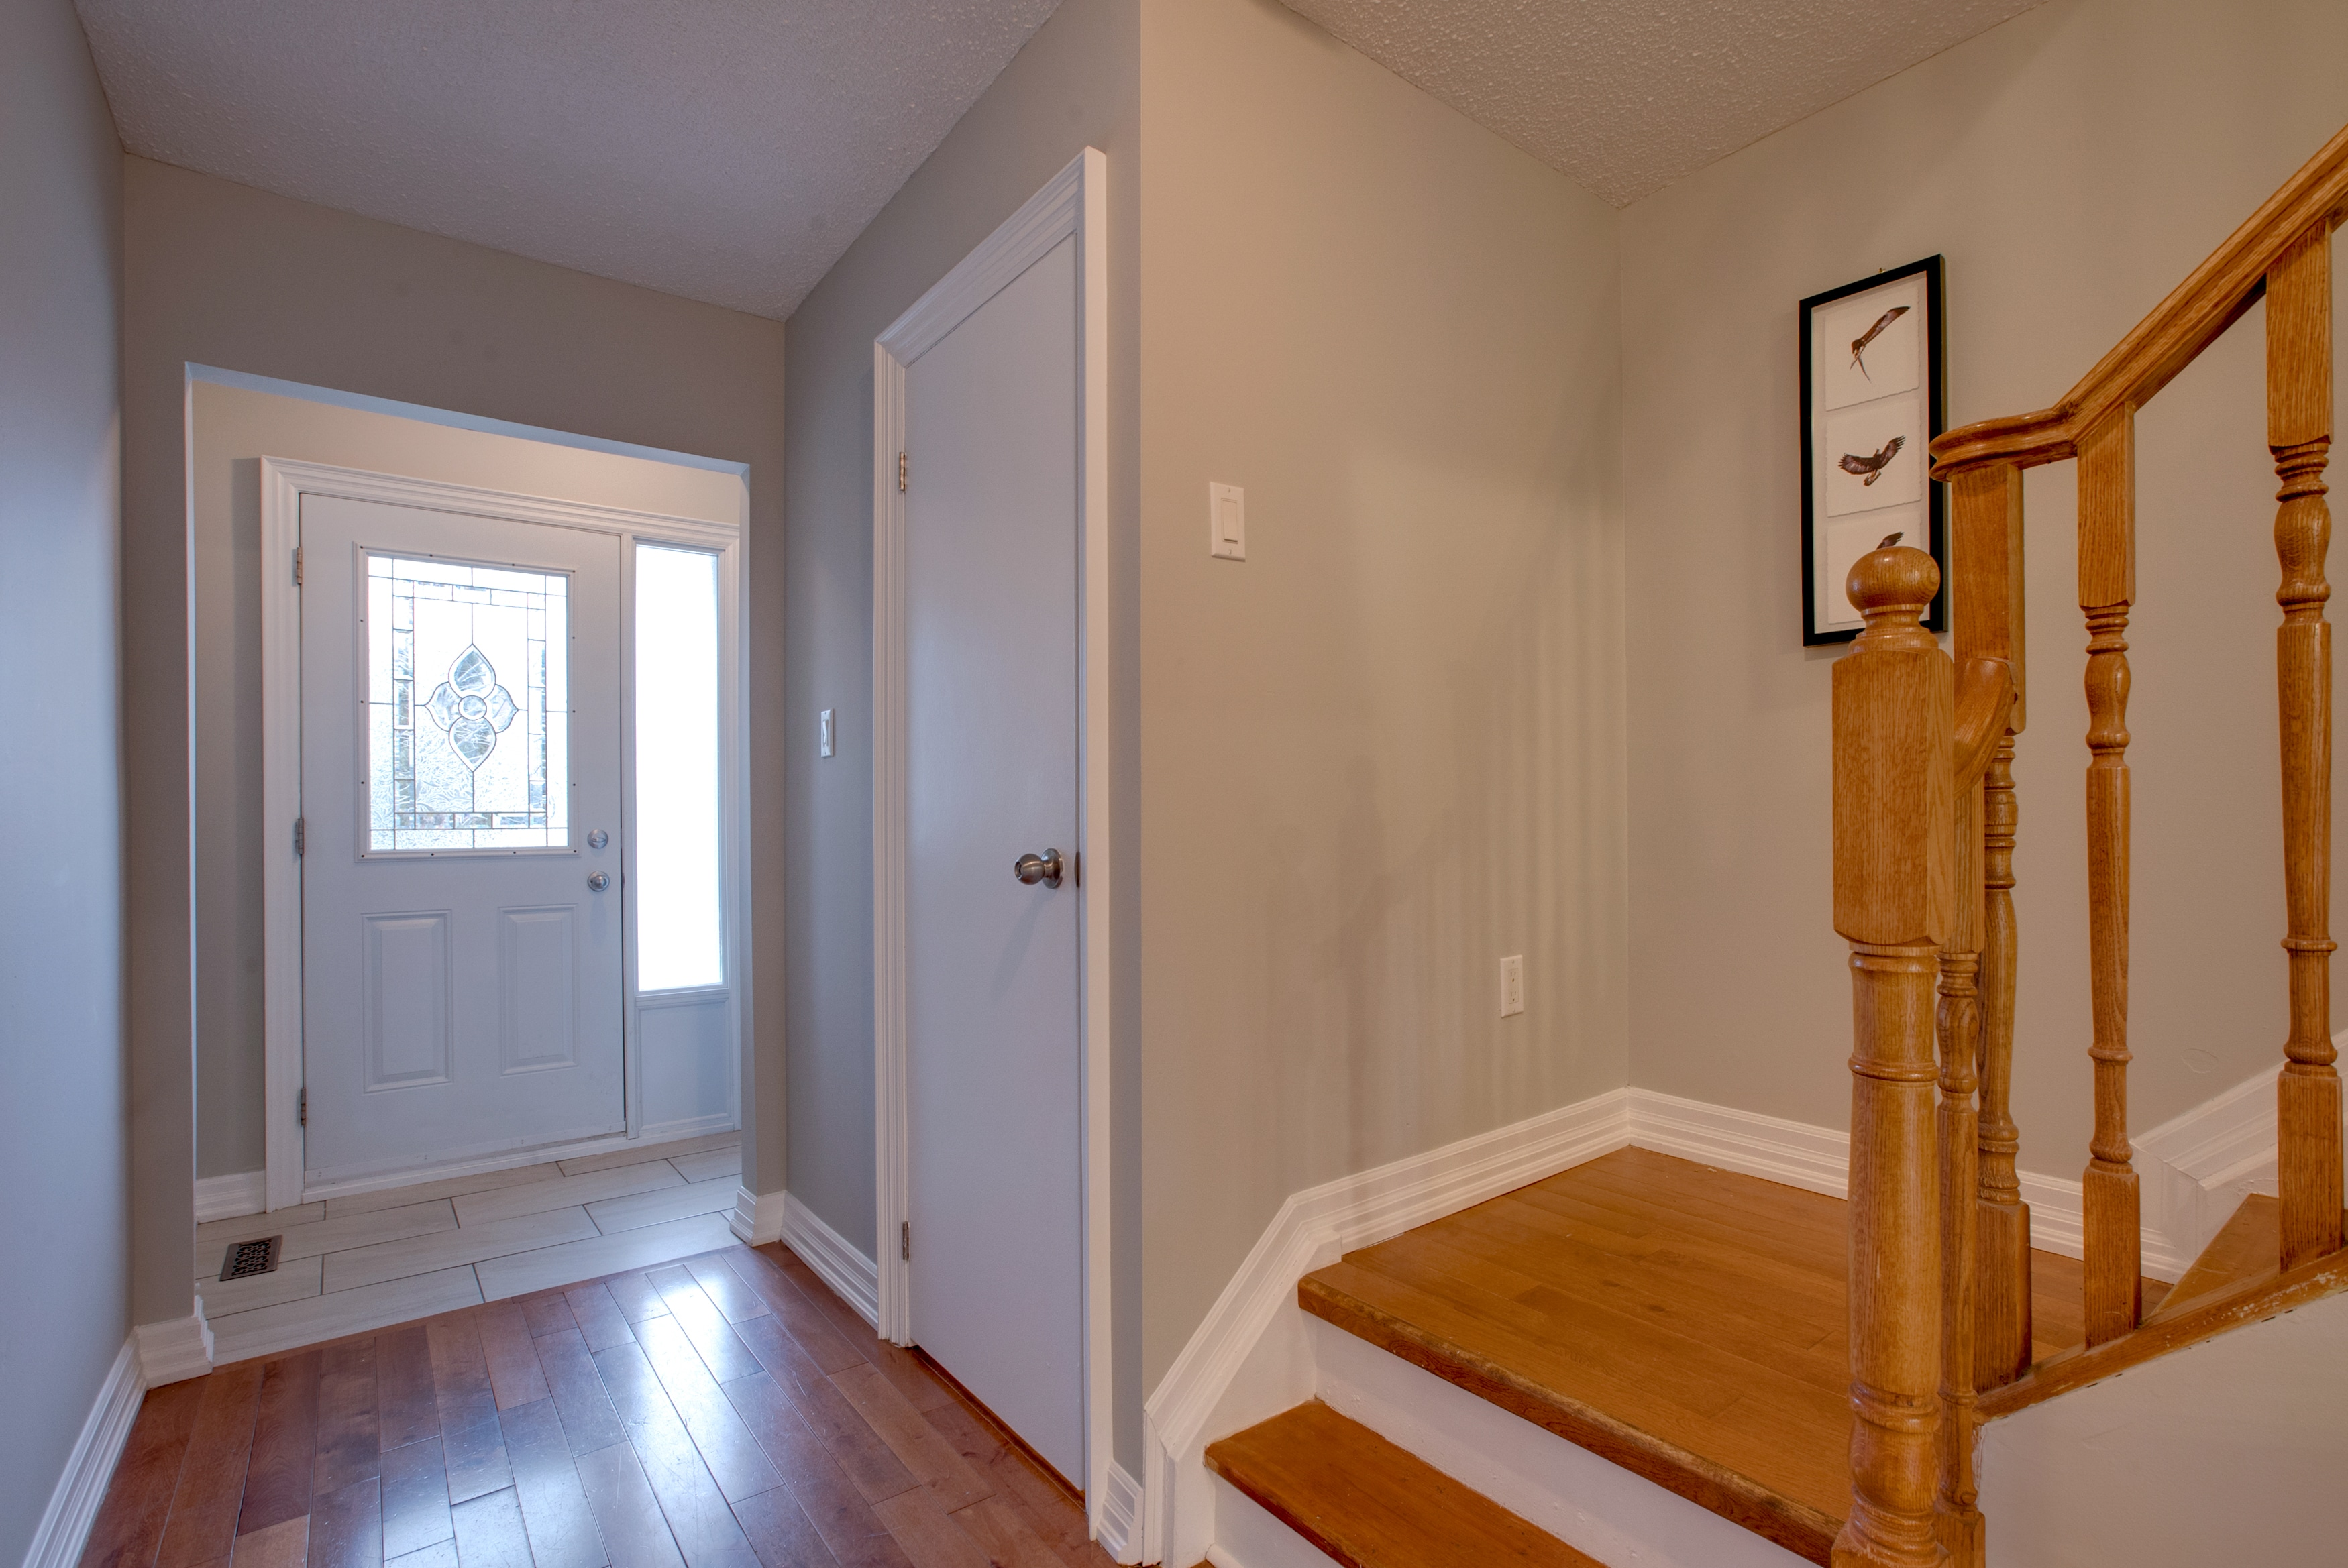 Finished Basement Property Tax Ontario